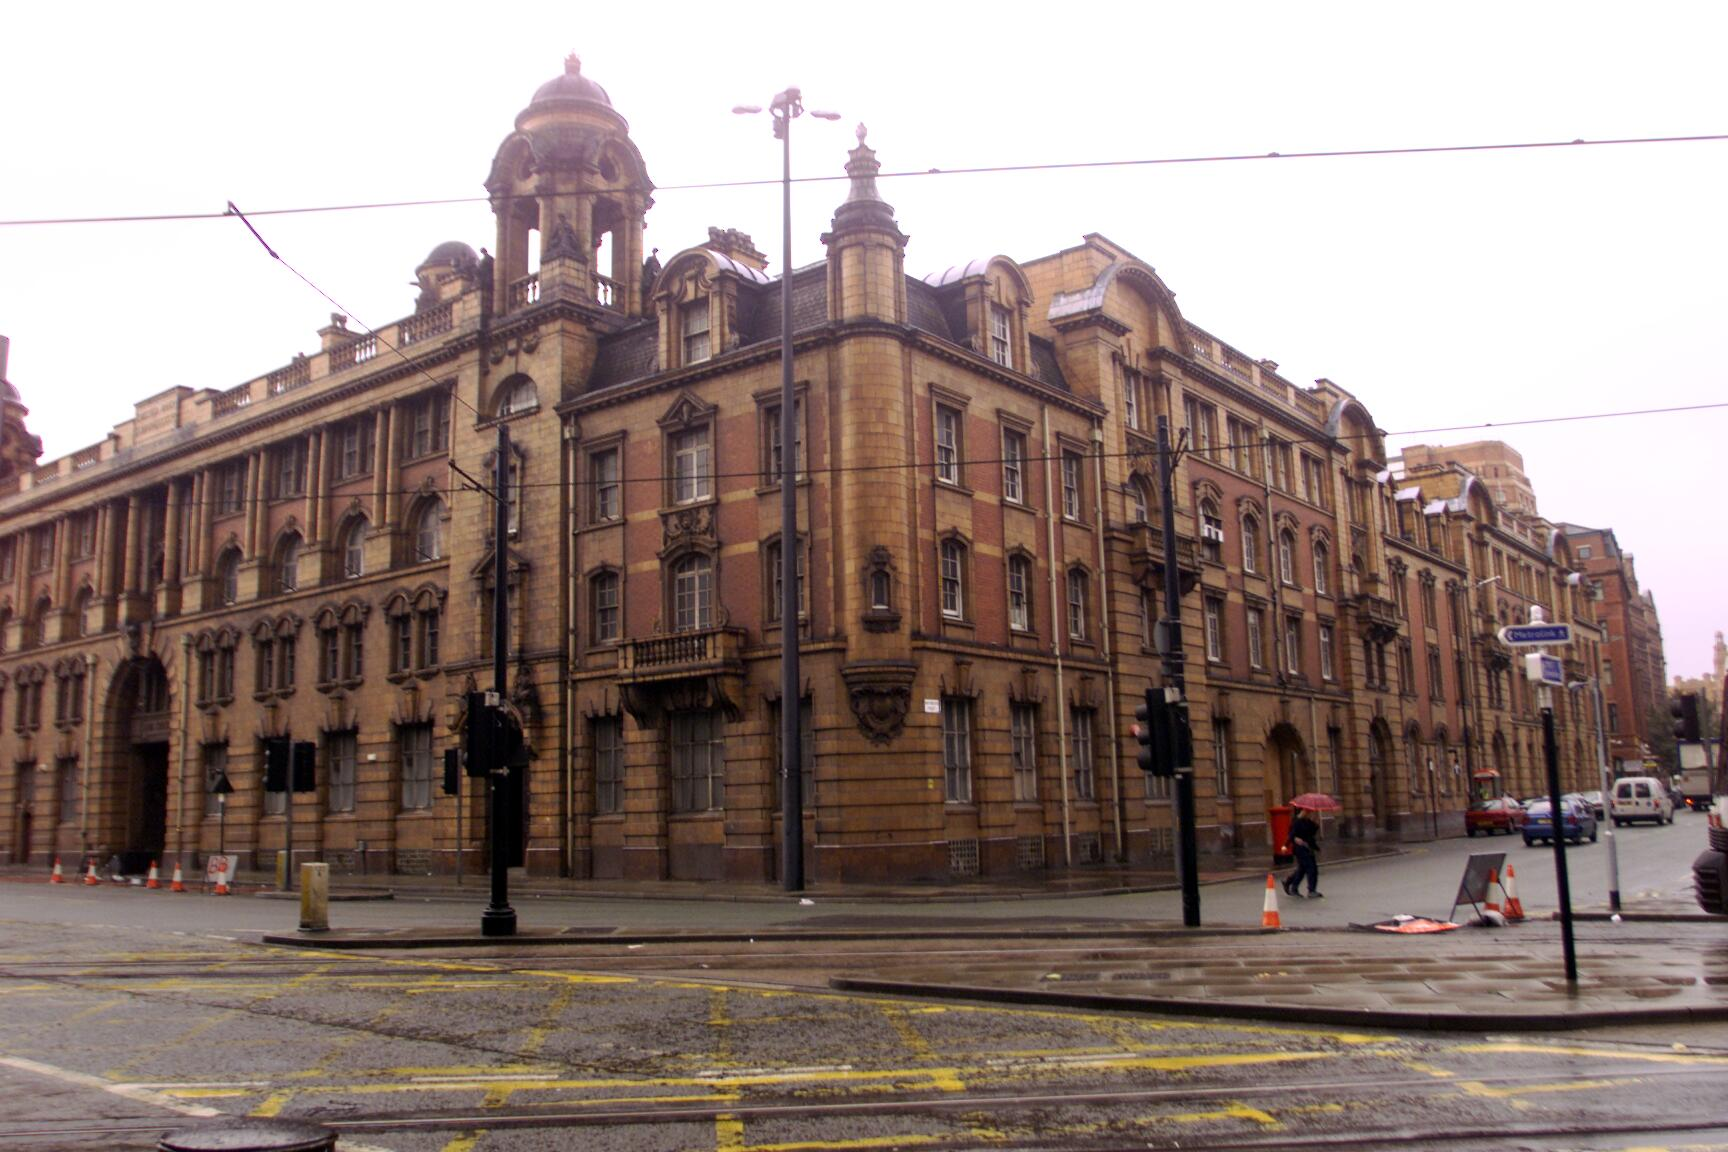 London Road Fire Station, Manchester  - Now